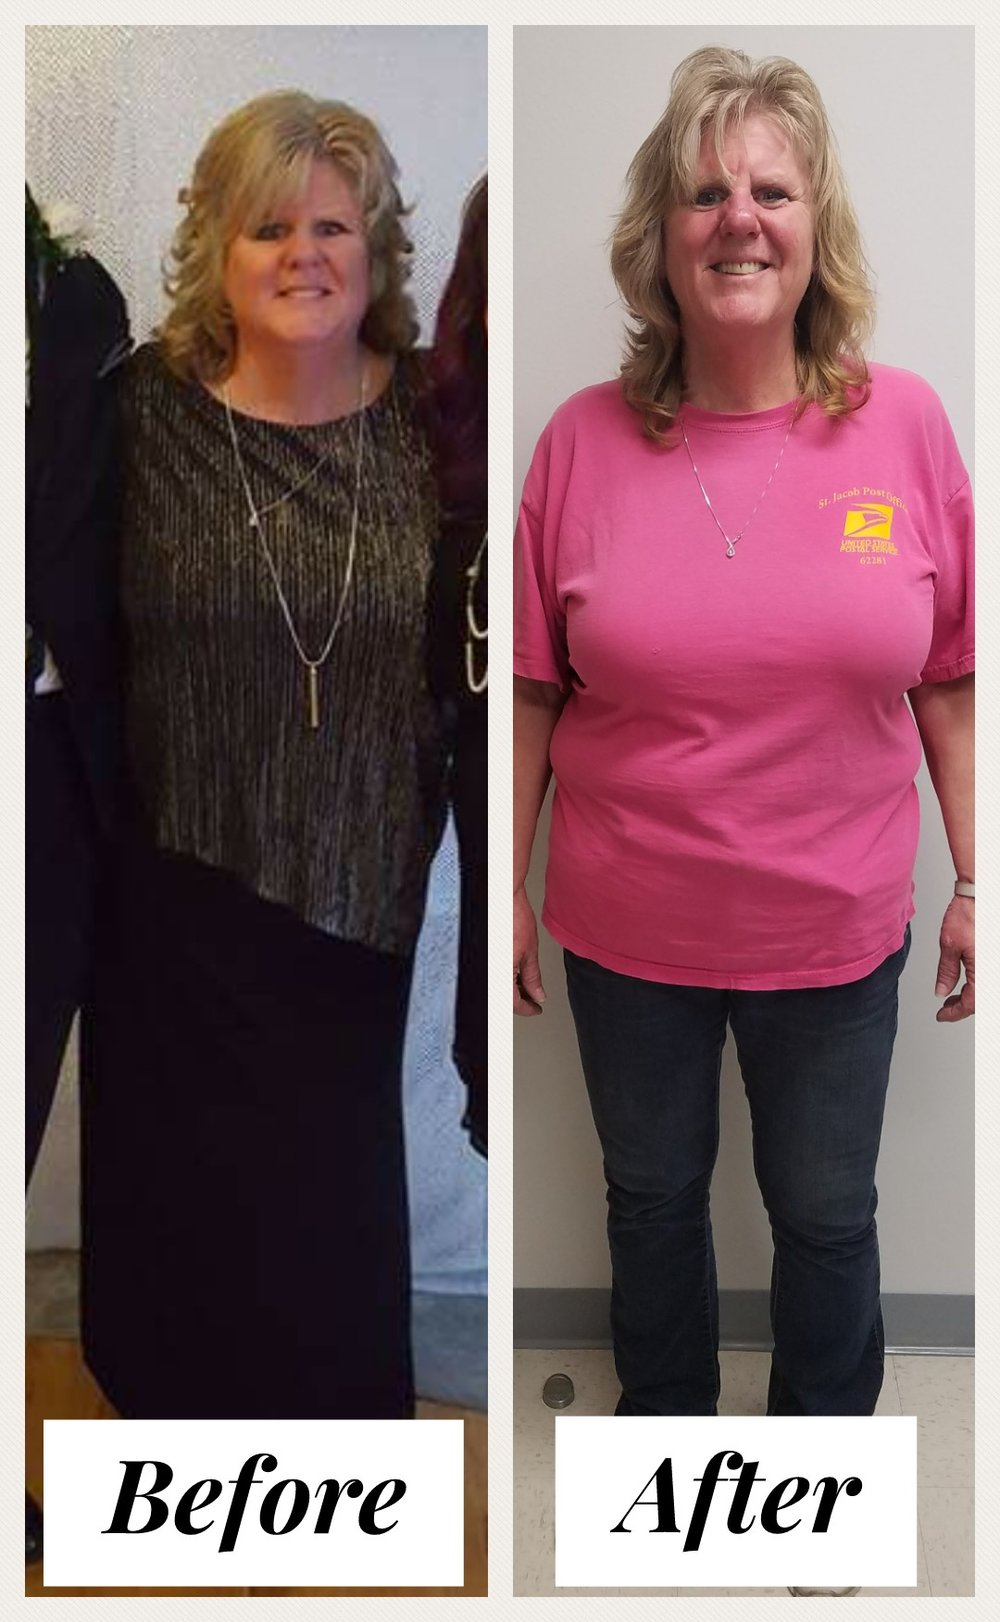 Amy Ritter      Starting Weight:  239 lbs                          Current Weight:  186 lbs - Amy started her journey at SOGA CMWL just 7 months ago.  Amy started on the QuickStart Program and is currently sticking to the Modified Program with bi-weekly weigh-ins and Lipo B injections. So far she has lost a total of 53 pounds, 9#s off her BMI,  36 lbs of just Fat, 7.6% Body Fat, added 4% on her water intake and actually went up  1 lb of Muscle!Amy wrote:  I have struggled with weight most of my life.  Up and down but mostly up.  I felt like I carried all the extra weight on my knees and hips.They were hurting so bad, I knew it was time to find something that worked! Being on certain meds for artificial heart valve, was one of my biggest concerns.  I tried herbal dieting then just gave up.  I lost my parents within 4 months of each other and divorce..all worked against me getting back on track.  Went to Dr. Doll- Pollard and she was telling me about the new diet plan they had at SOGA.  I thought